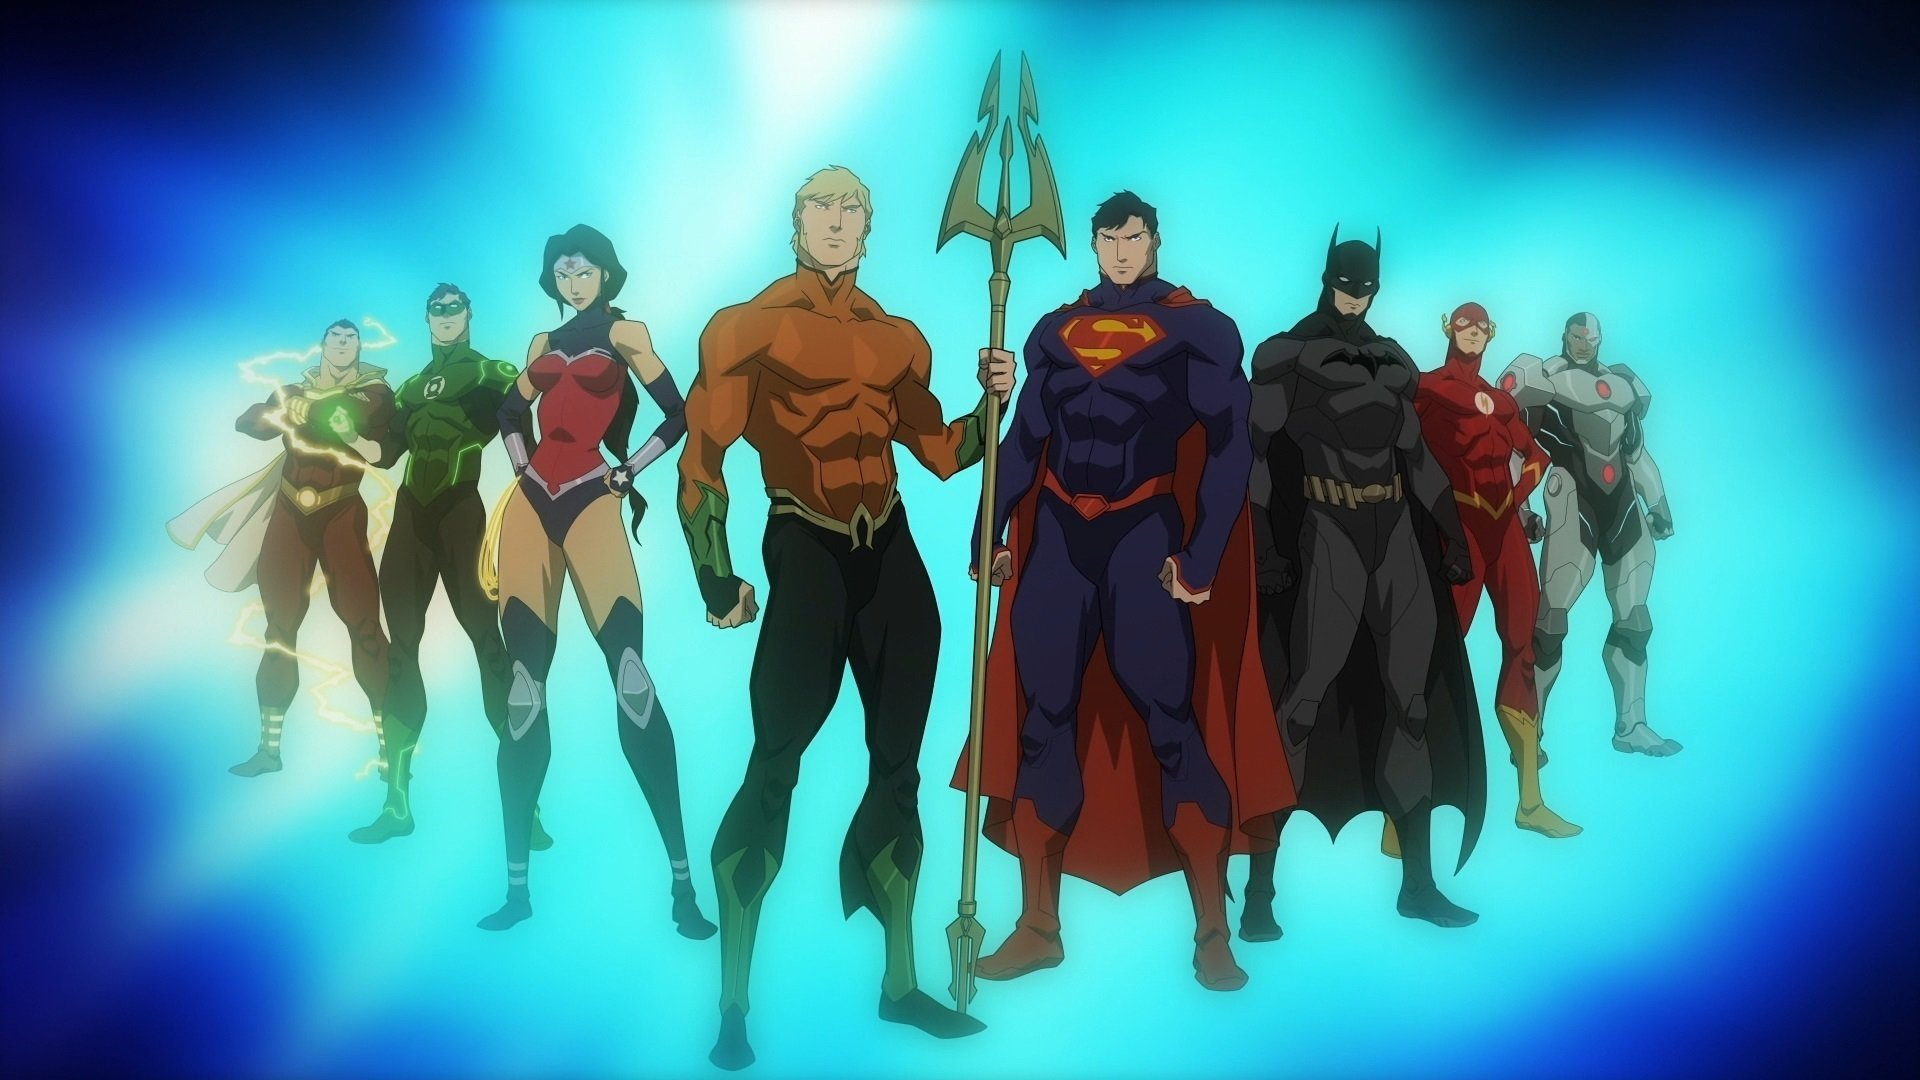 Hd wallpaper justice league - Hd Wallpaper Background Id 607270 1920x1080 Movie Justice League